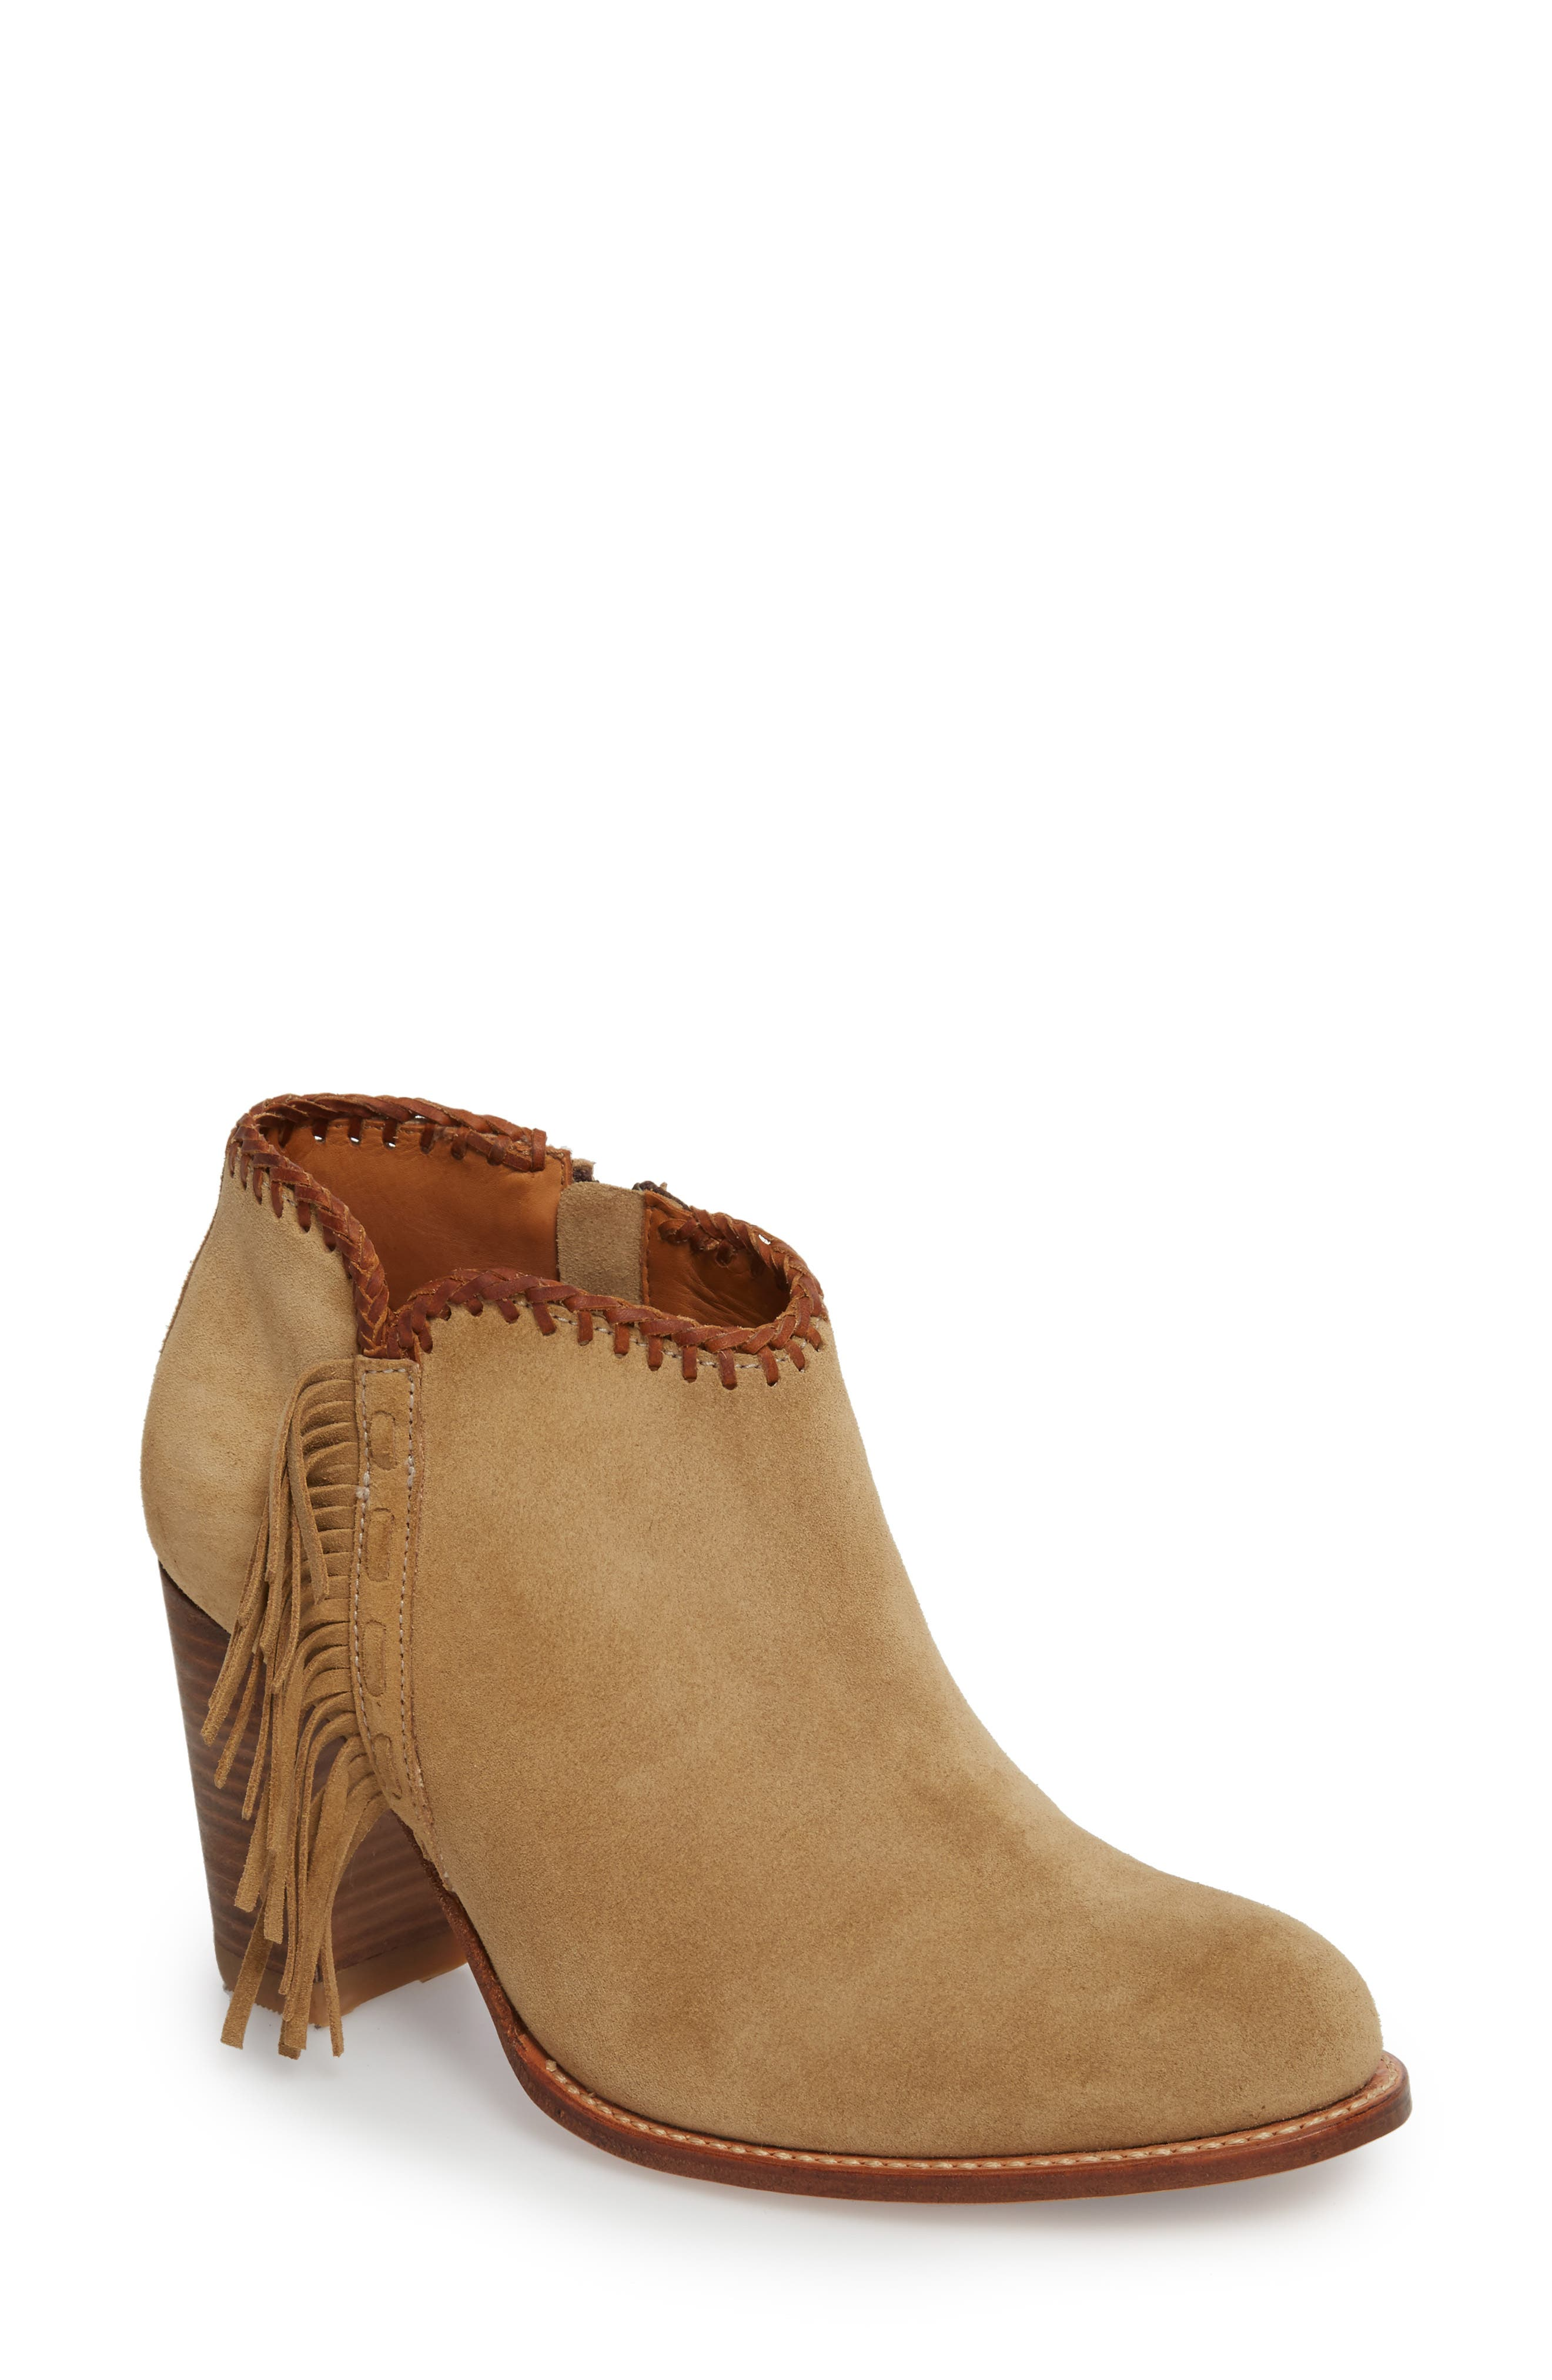 Sonya Fringed Bootie,                         Main,                         color, Taupe Suede